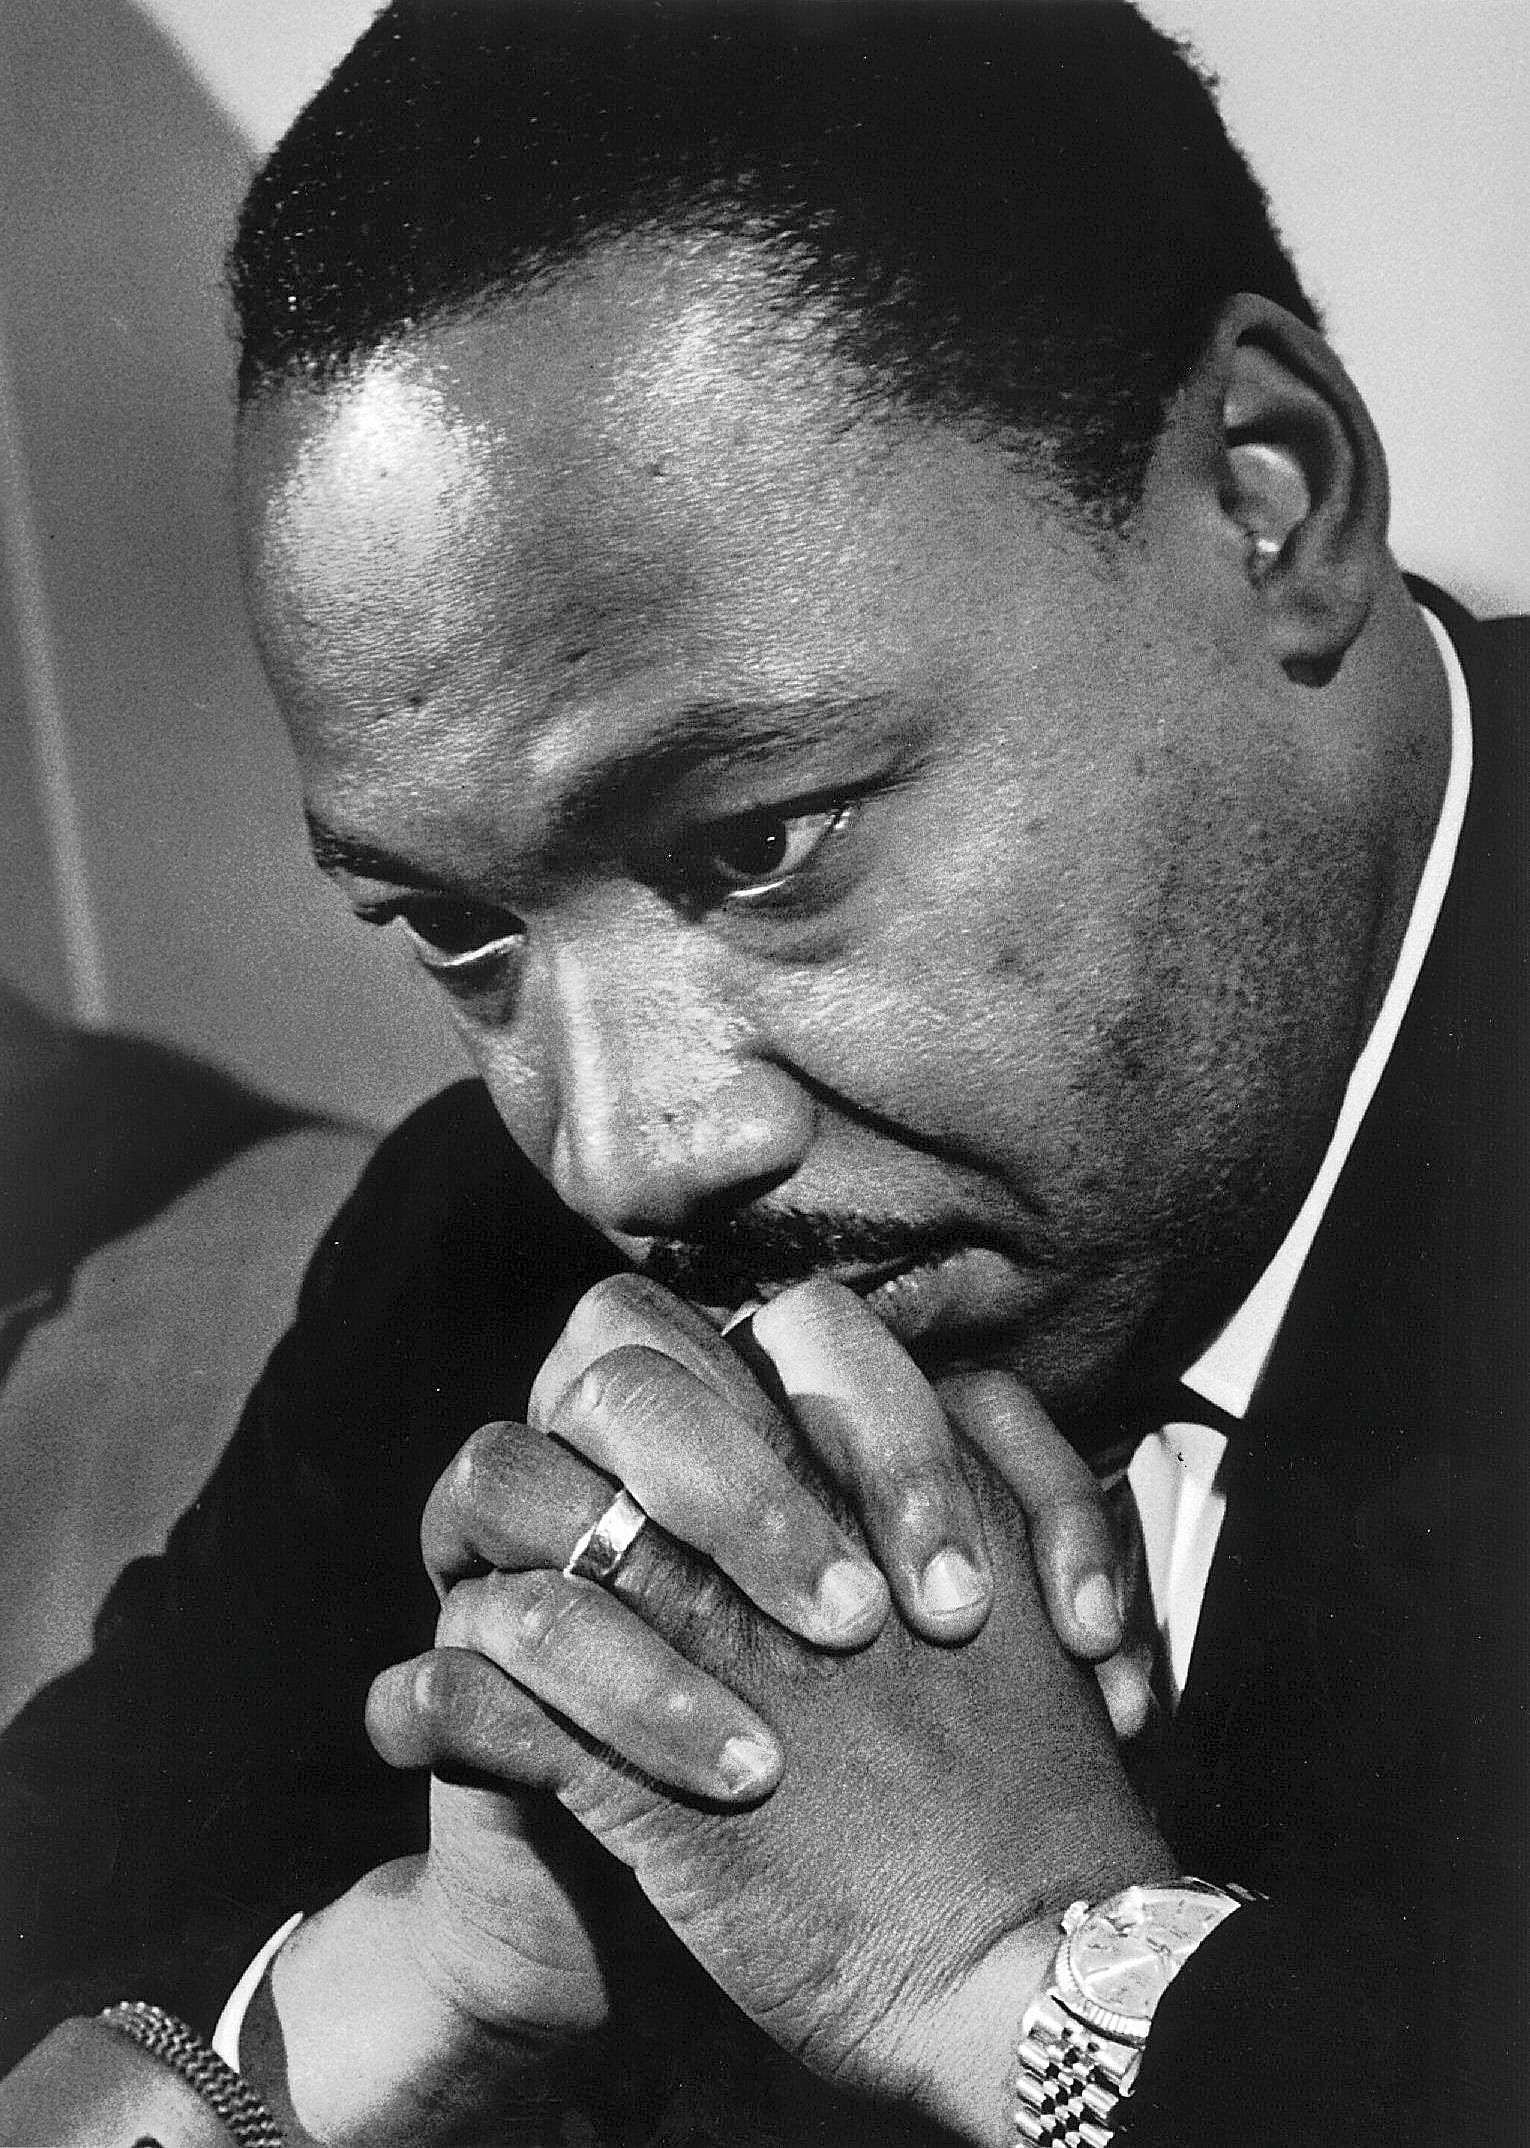 5 things you might not know about Martin Luther King Jr